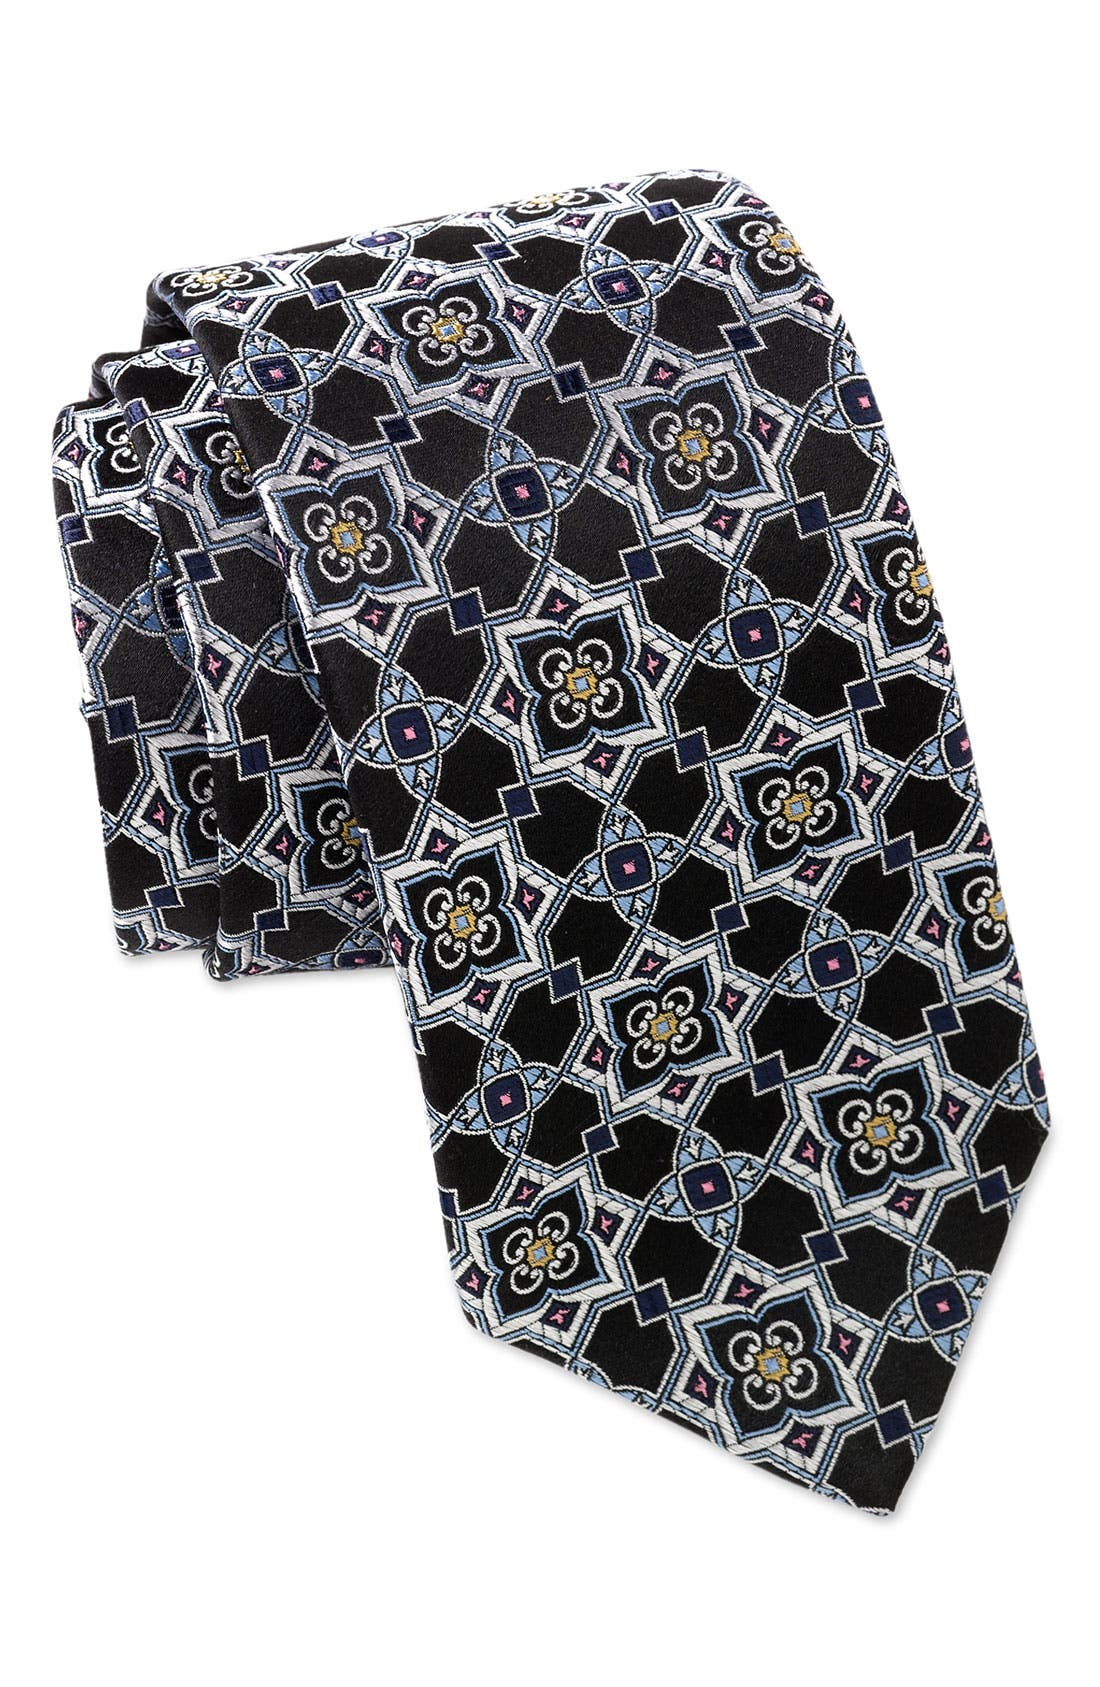 'Best of Class' Woven Silk Tie,                             Main thumbnail 1, color,                             001